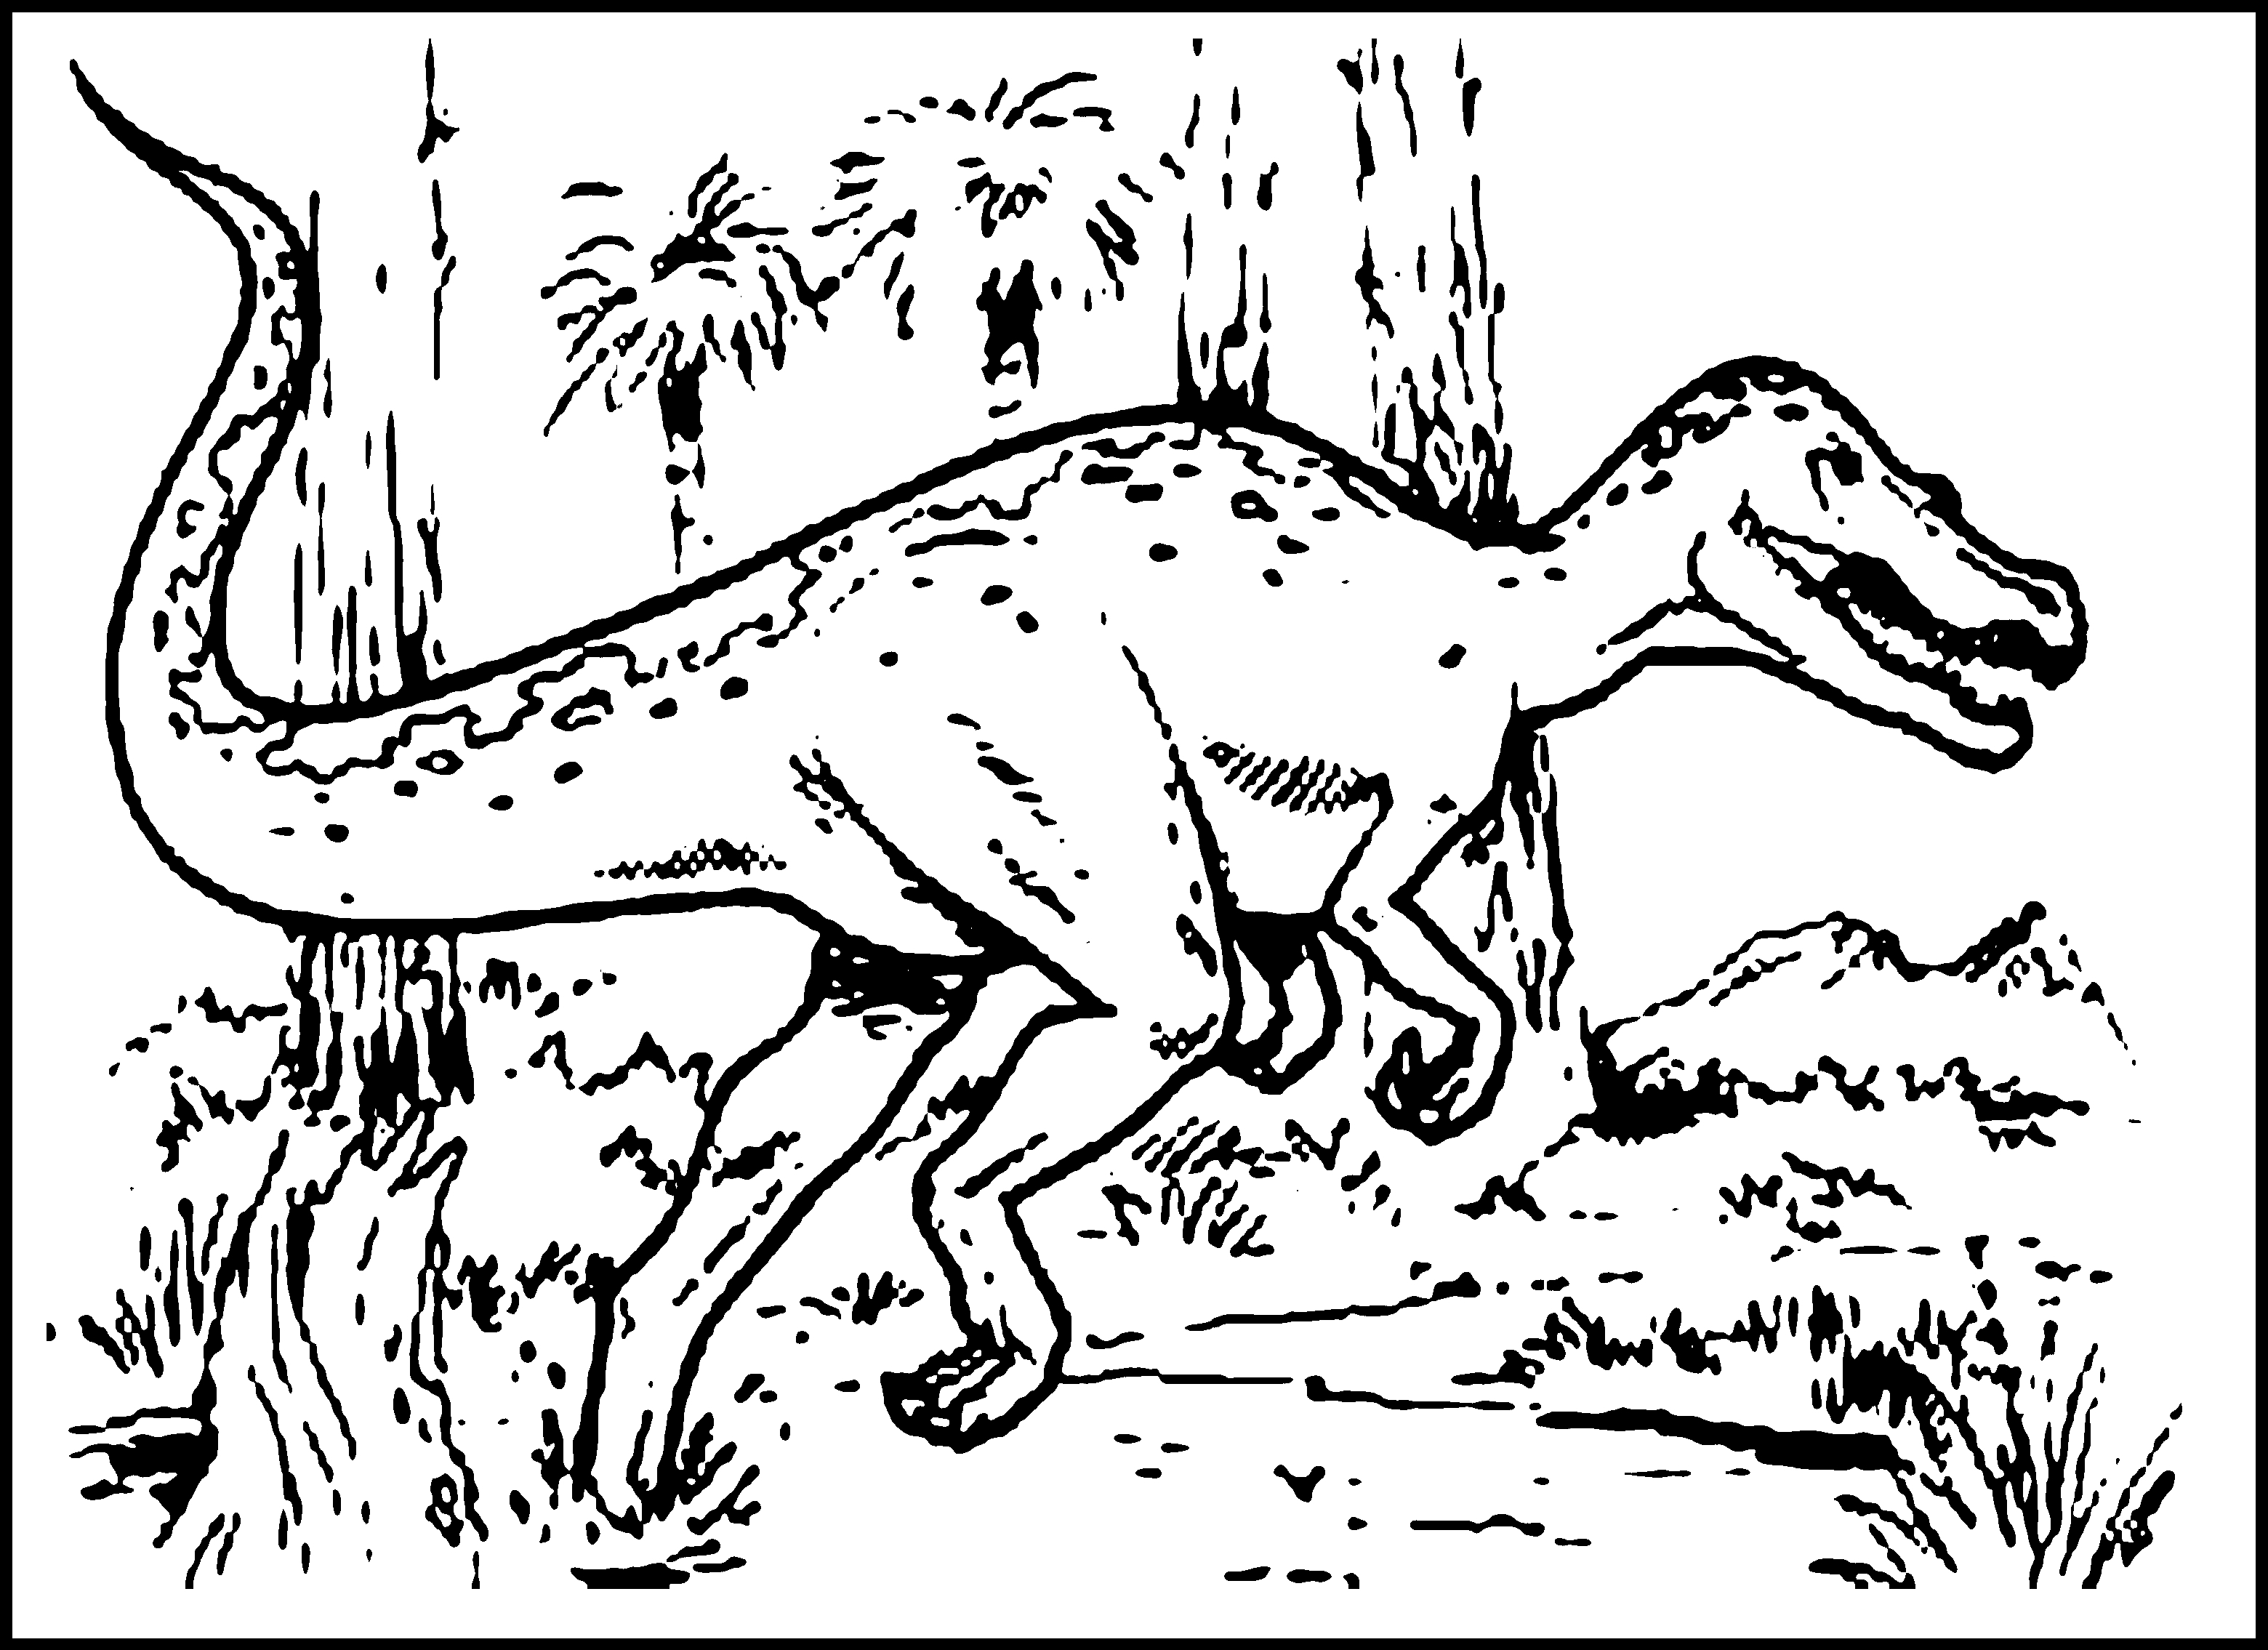 free printable dinosaur coloring pages coloring pages dinosaur free printable coloring pages pages free dinosaur printable coloring